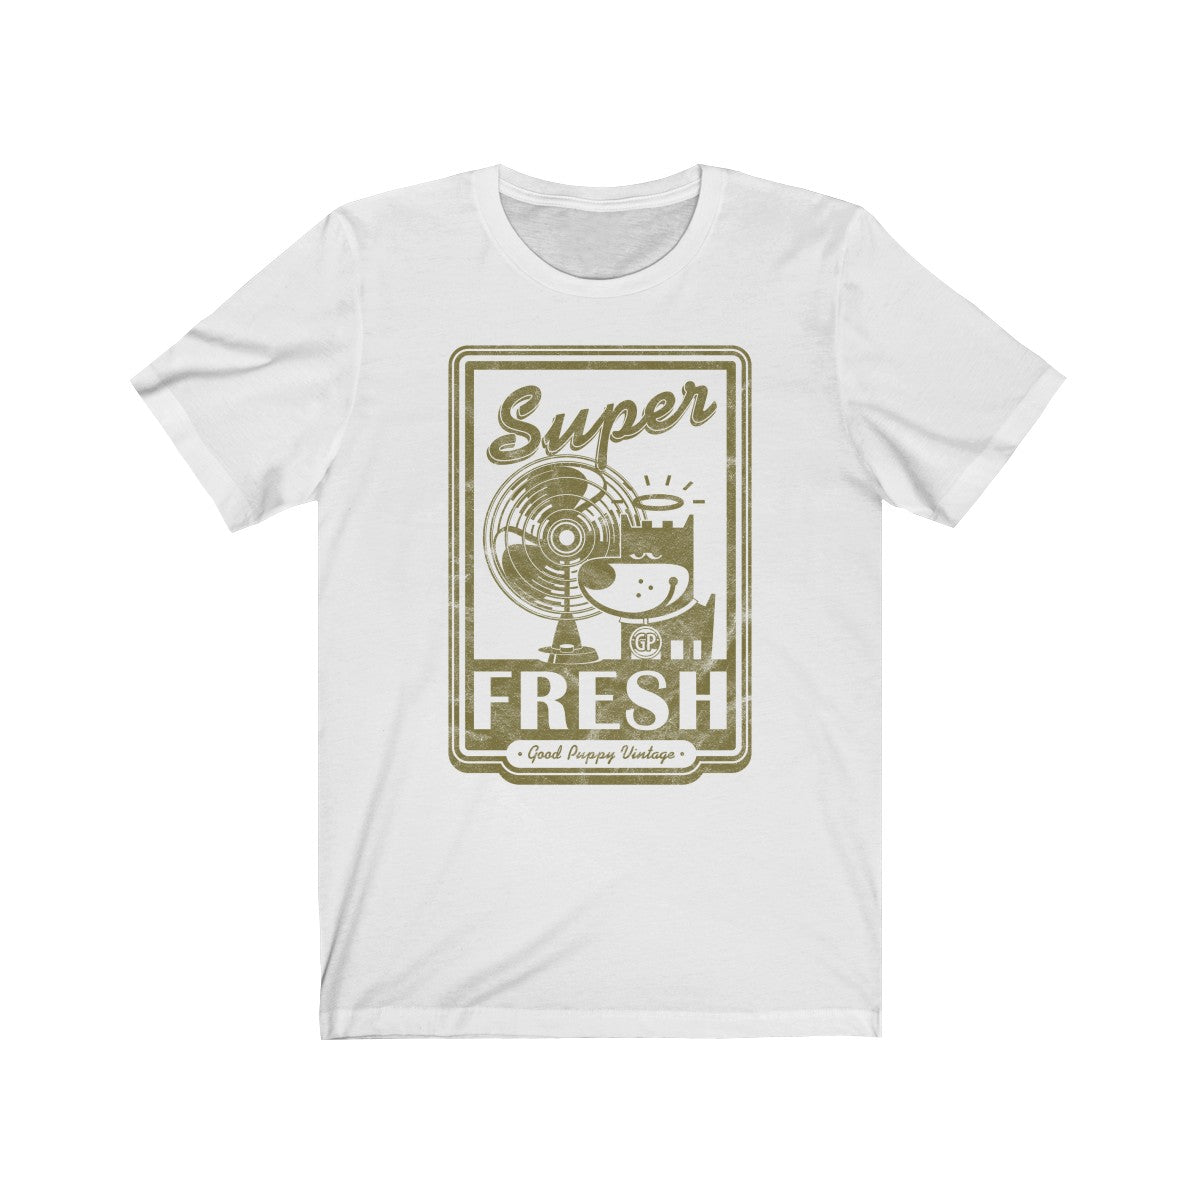 Unisex Tee, 100% Cotton, Super Fresh, Good Puppy Vintage